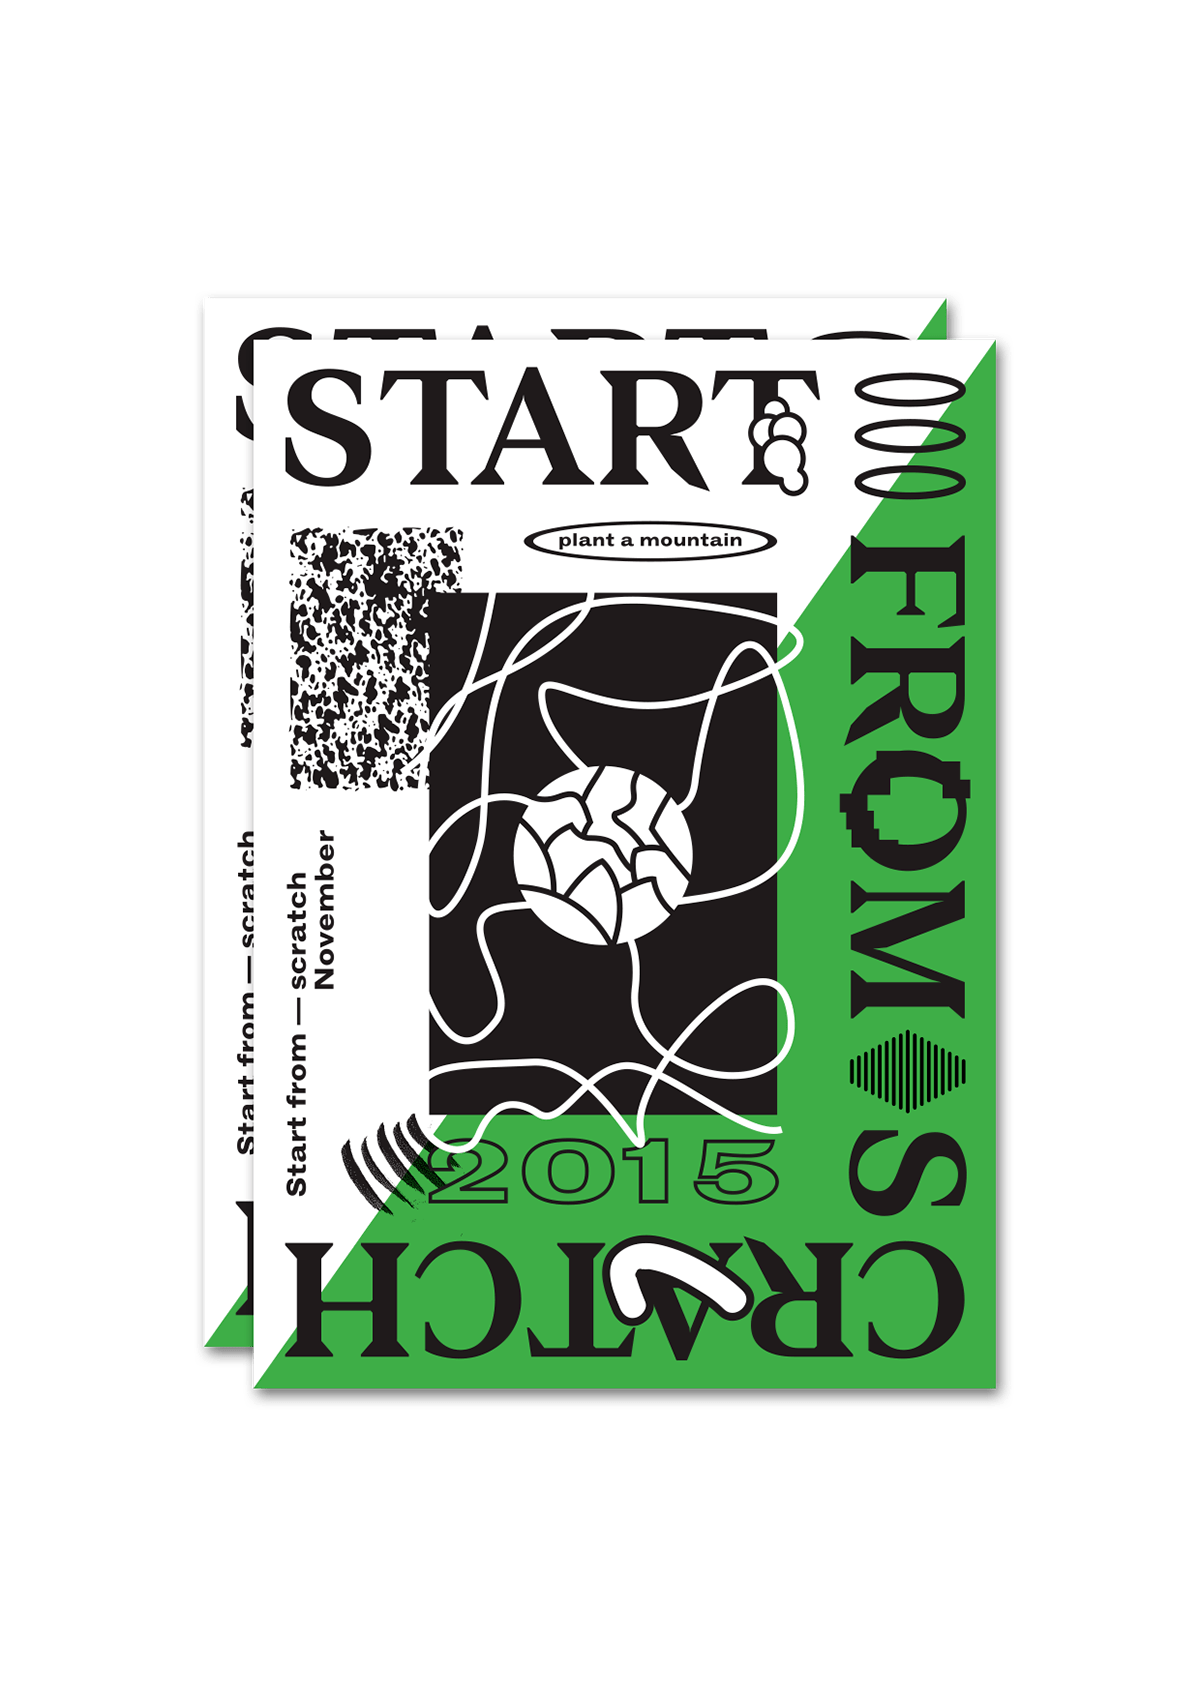 Start From Scratch for Fount Magazine on Behance